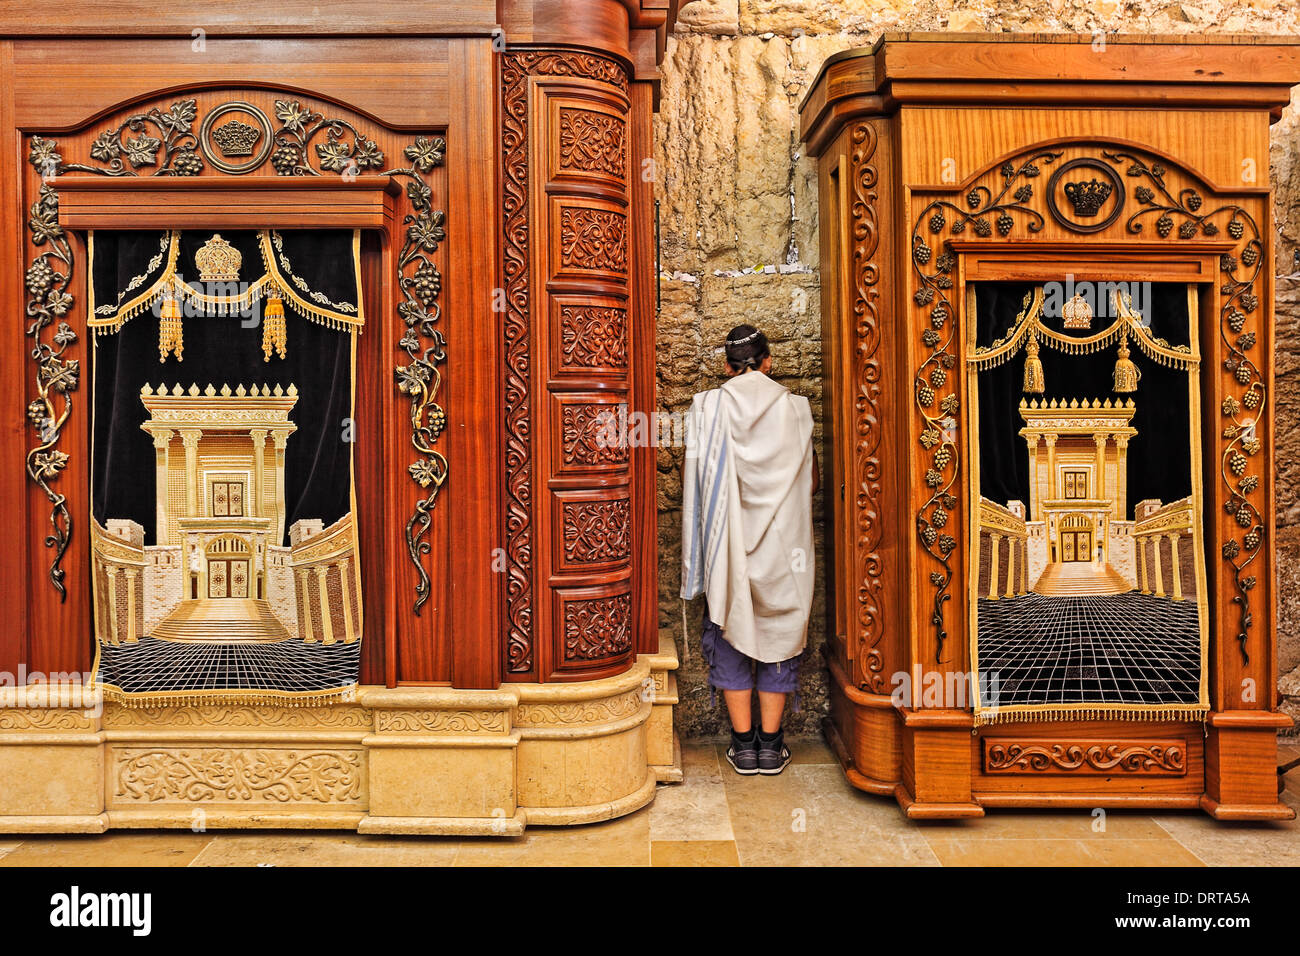 Prayer in Cave Synagogue between two wooden cabinets with Torah scrolls in Jerusalem, Israel. - Stock Image